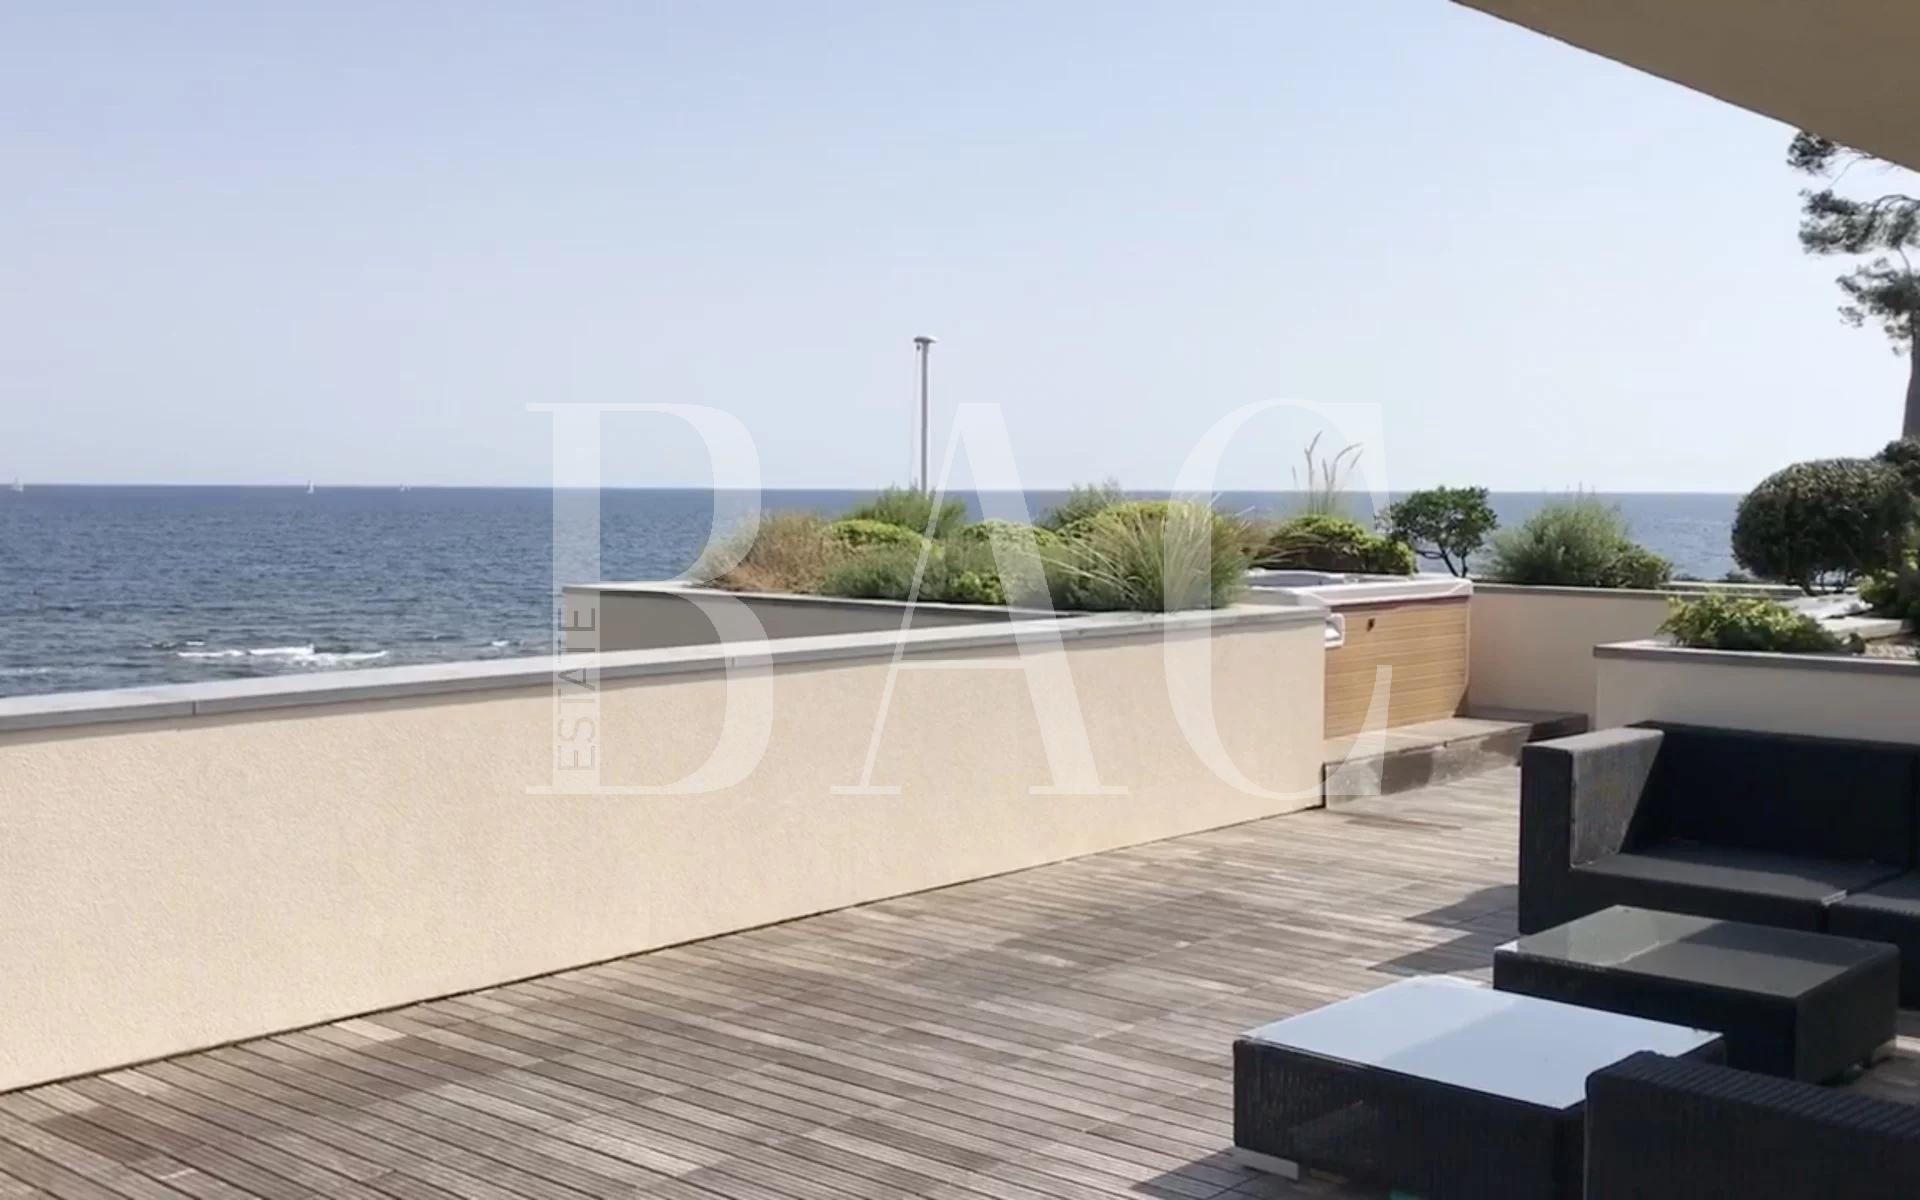 Saint-Aygulf, contemporary waterfront villa halfway between Cannes and Saint-Tropez